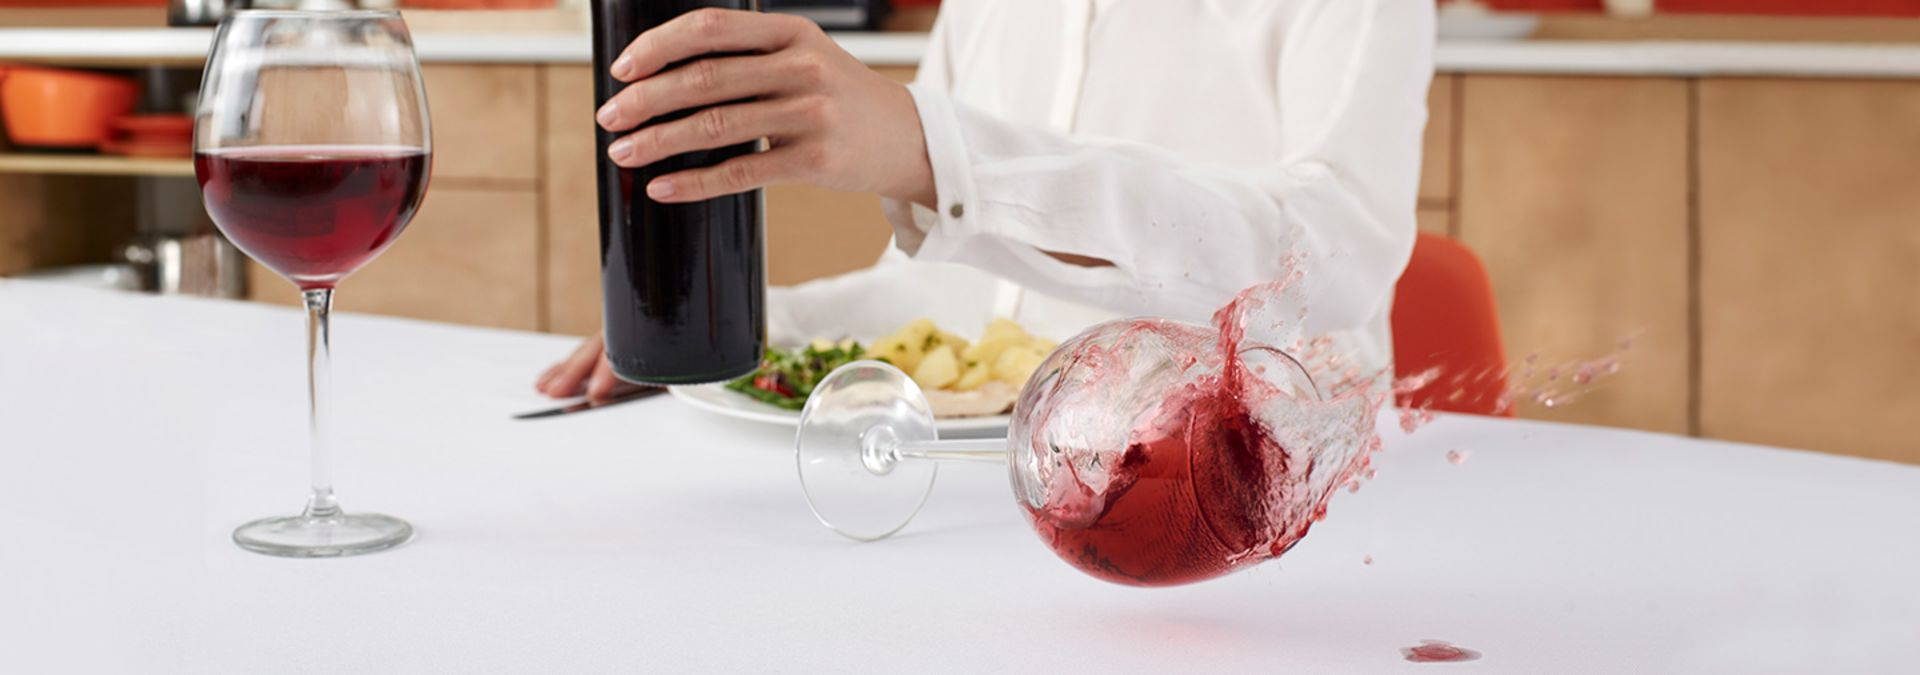 Red wine spilling onto a white table